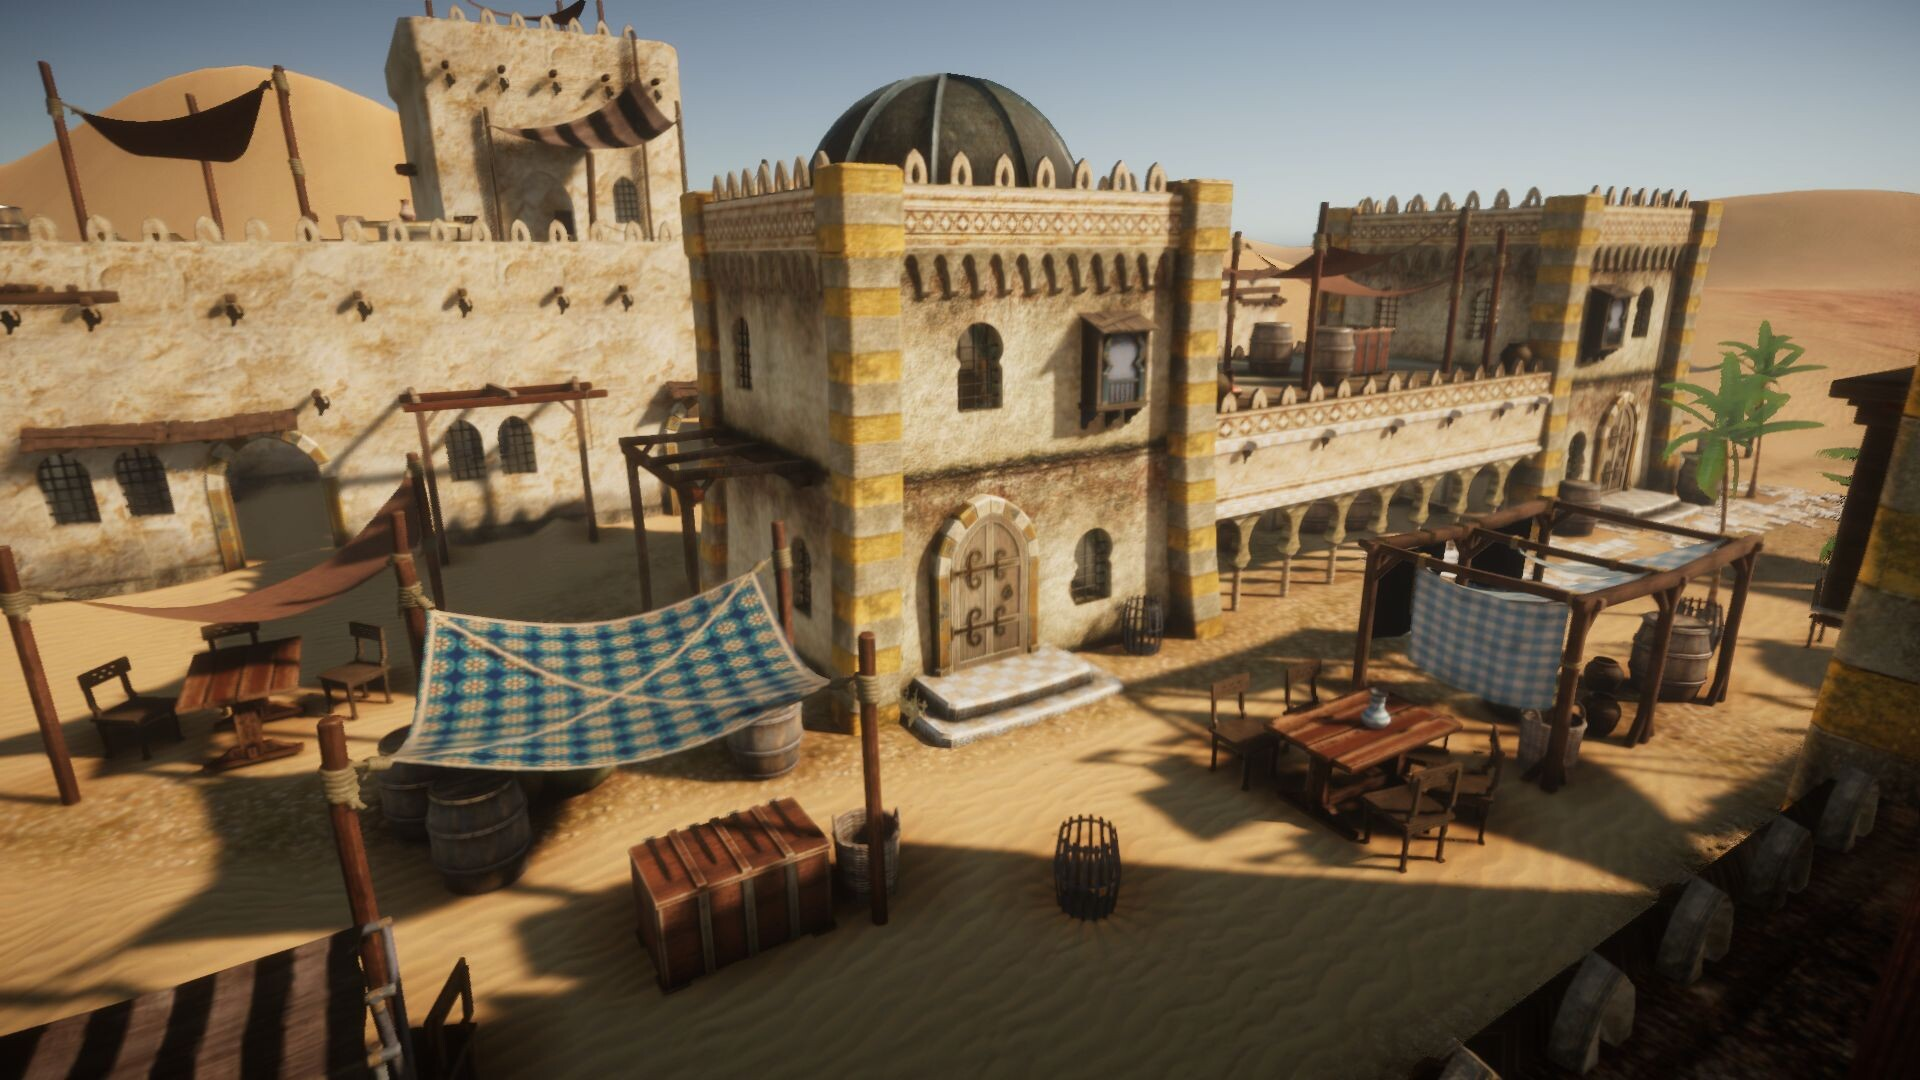 An image showing Desert Oasis asset pack, created with Unreal Engine 4.